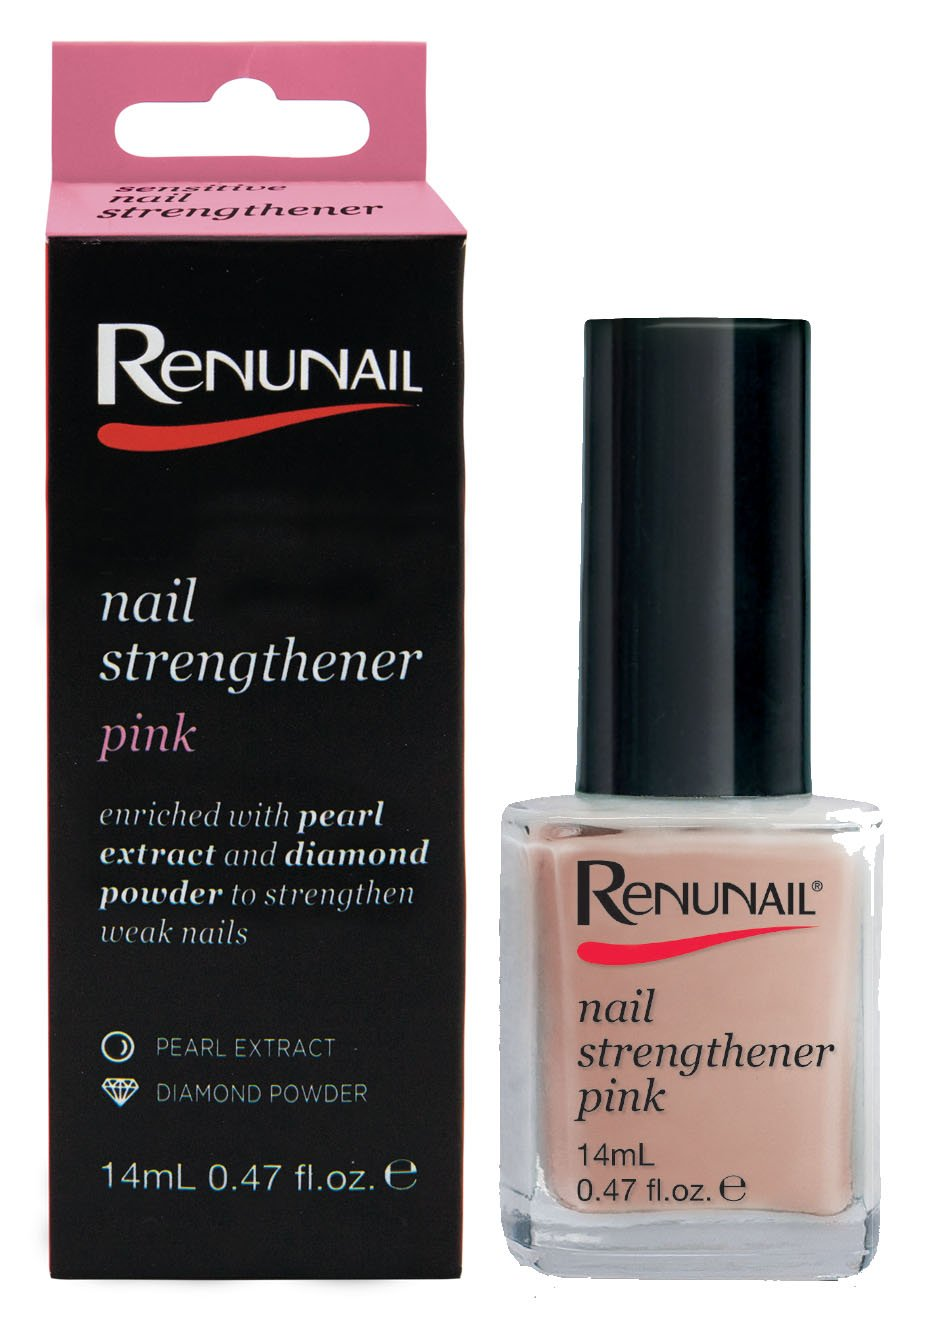 Renunail Sensitive Nagelhärter, 14 ml: Amazon.de: Beauty